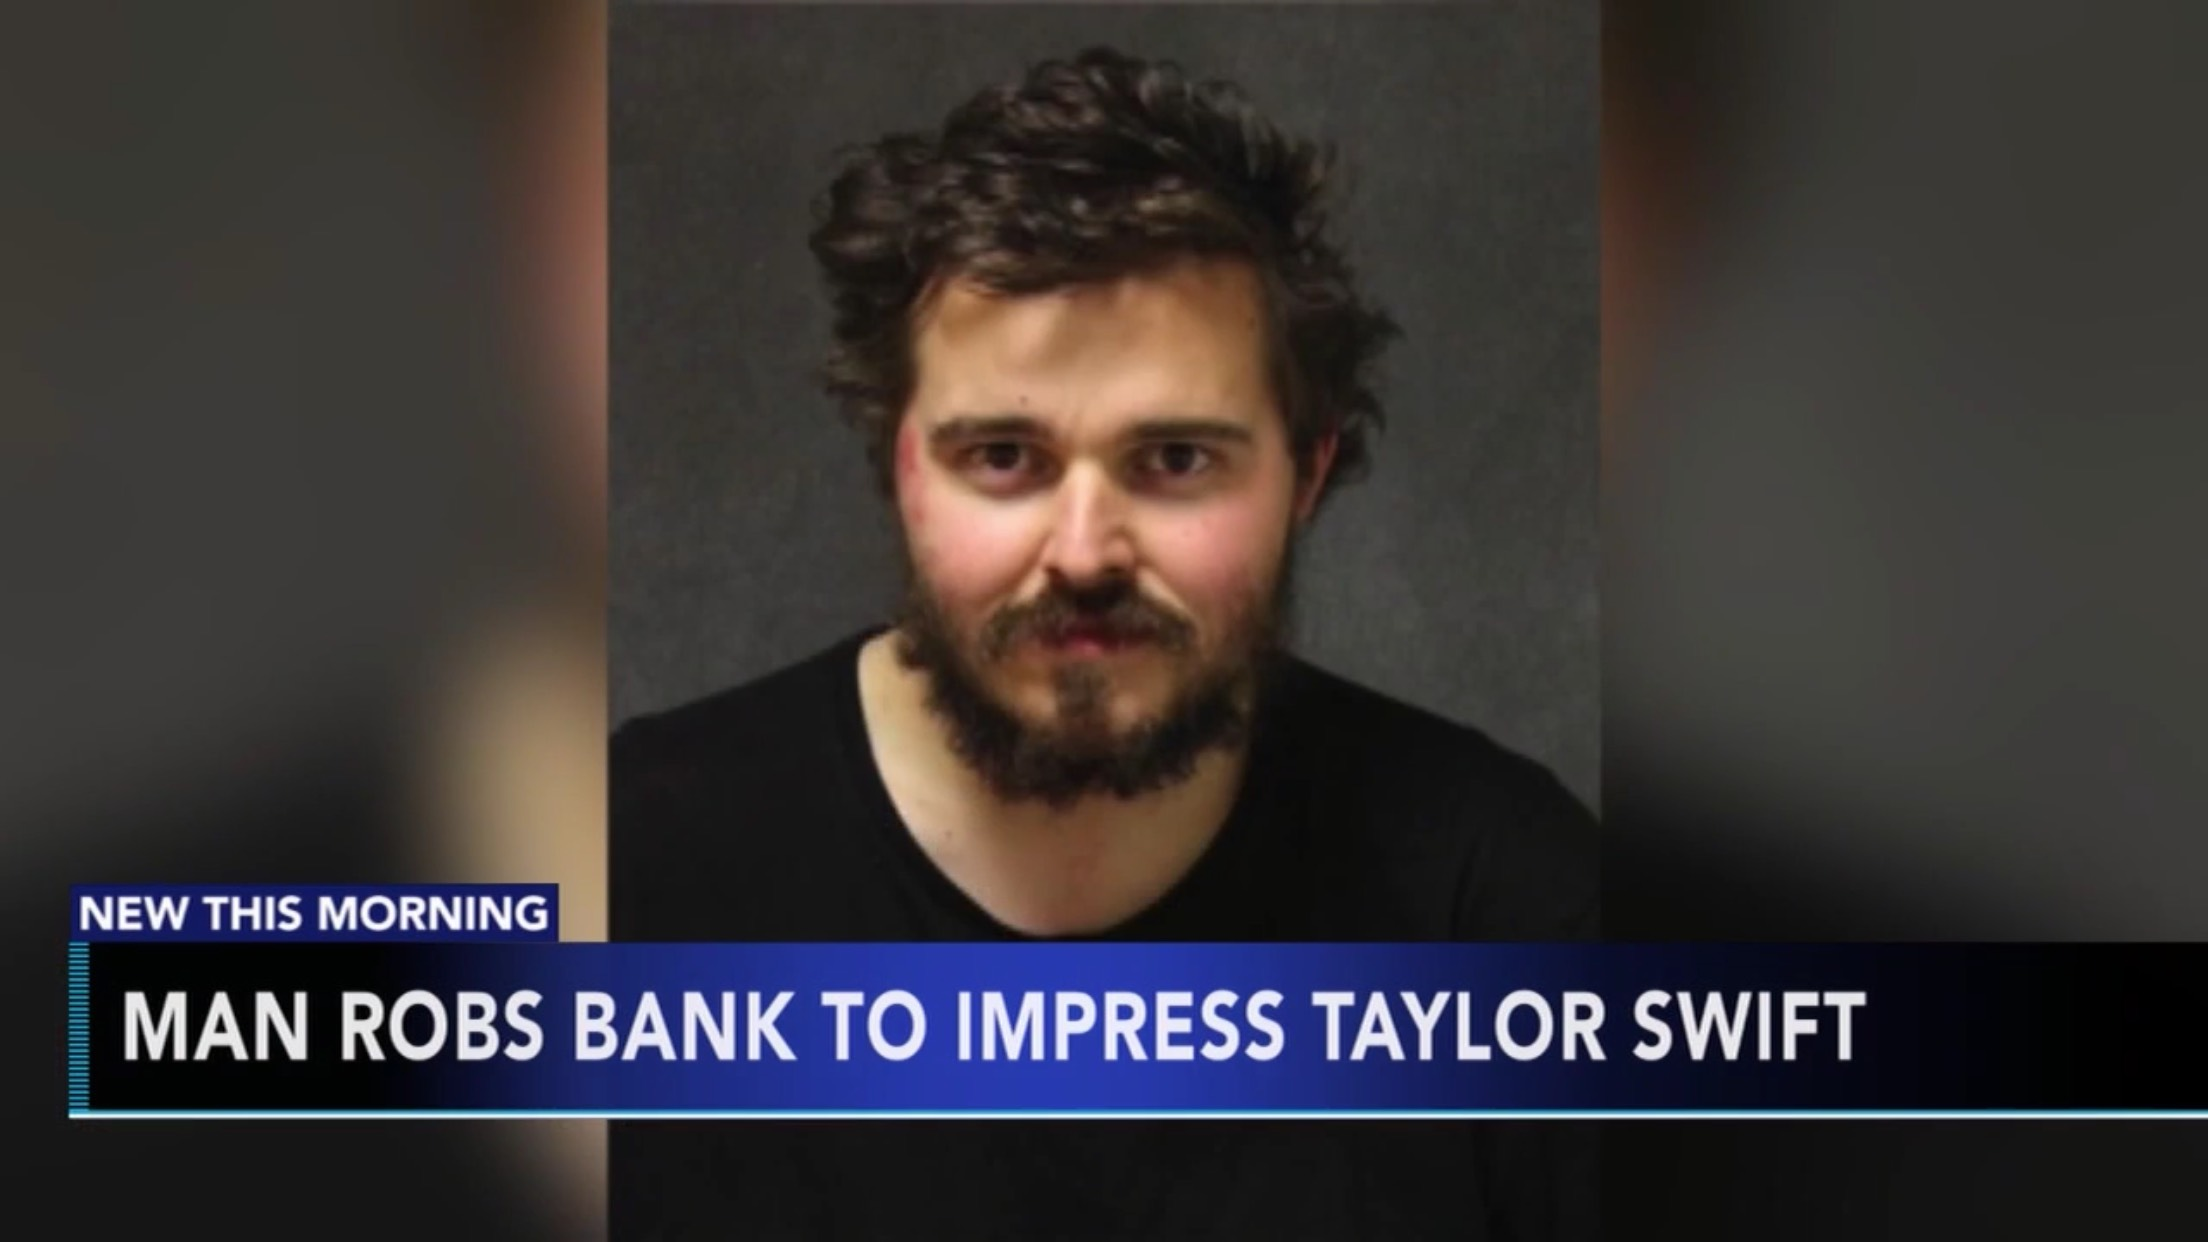 Man Robs Bank To Impress Taylor Swift